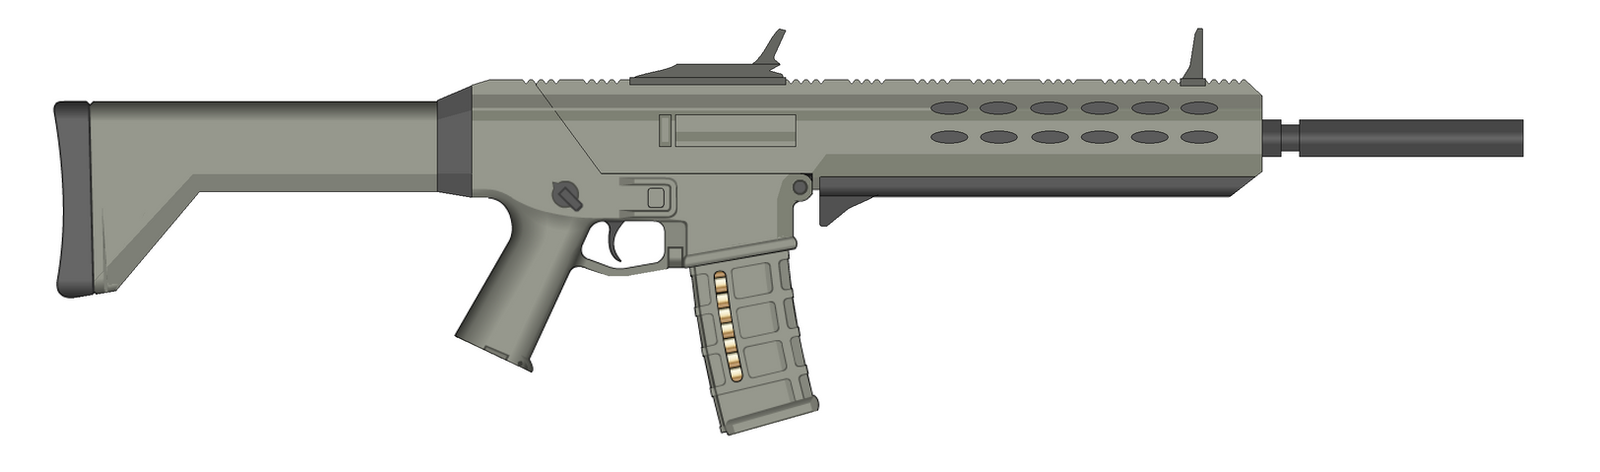 Simple Combat Rifle by Artmarcus